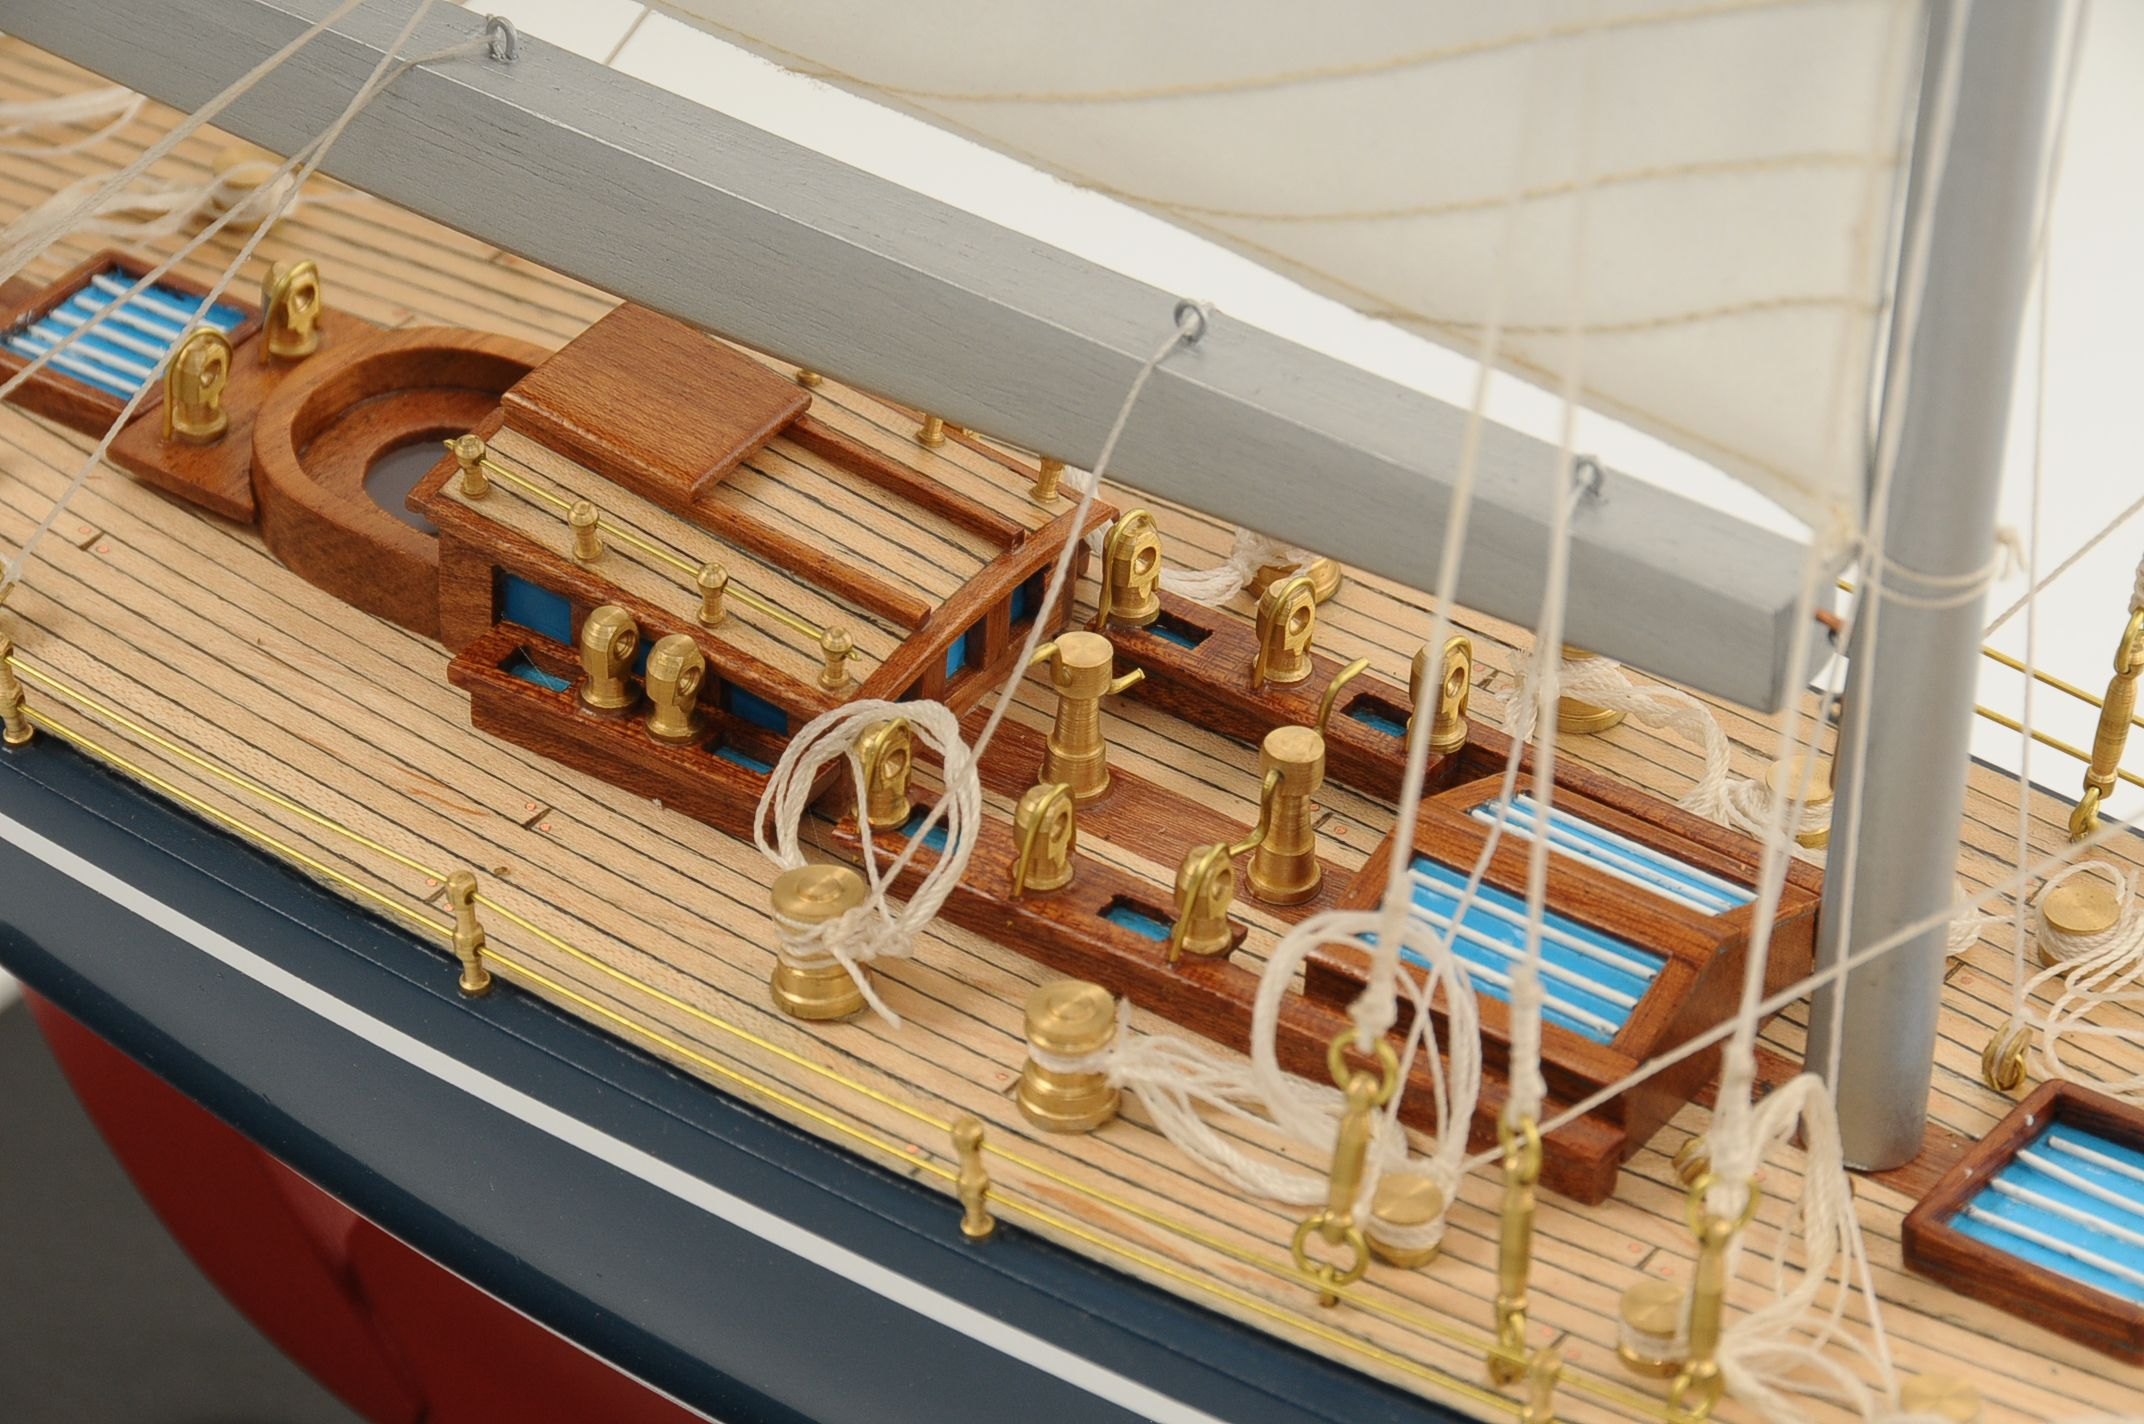 472-8249-Endeavour-Model-Yacht-Superior-Range